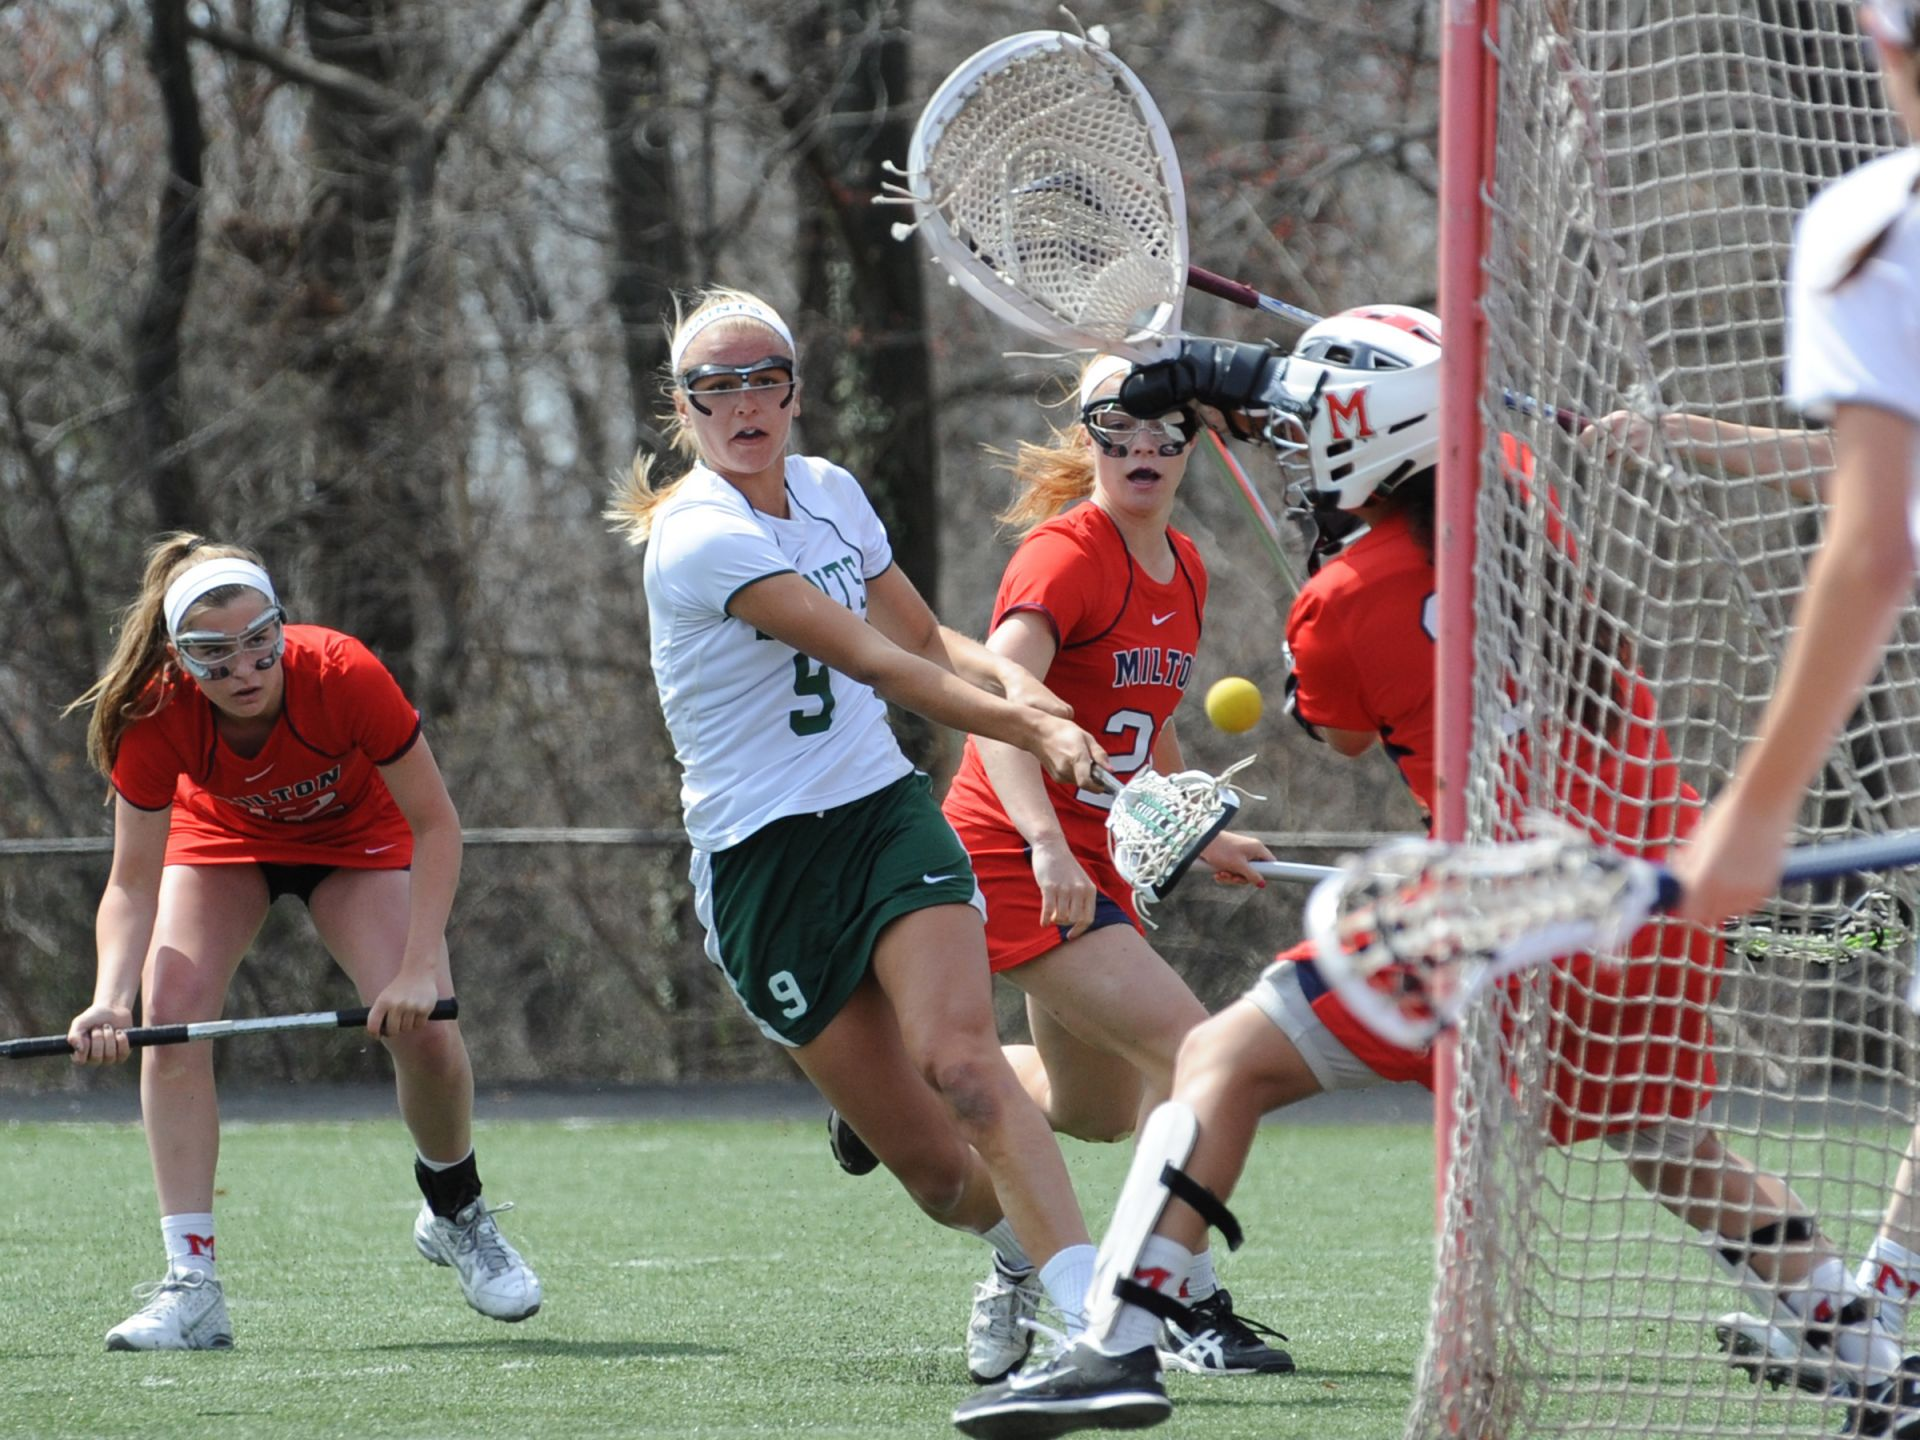 SOPHIE DAVIDSON | LACROSSE | DARTMOUTH COLLEGE